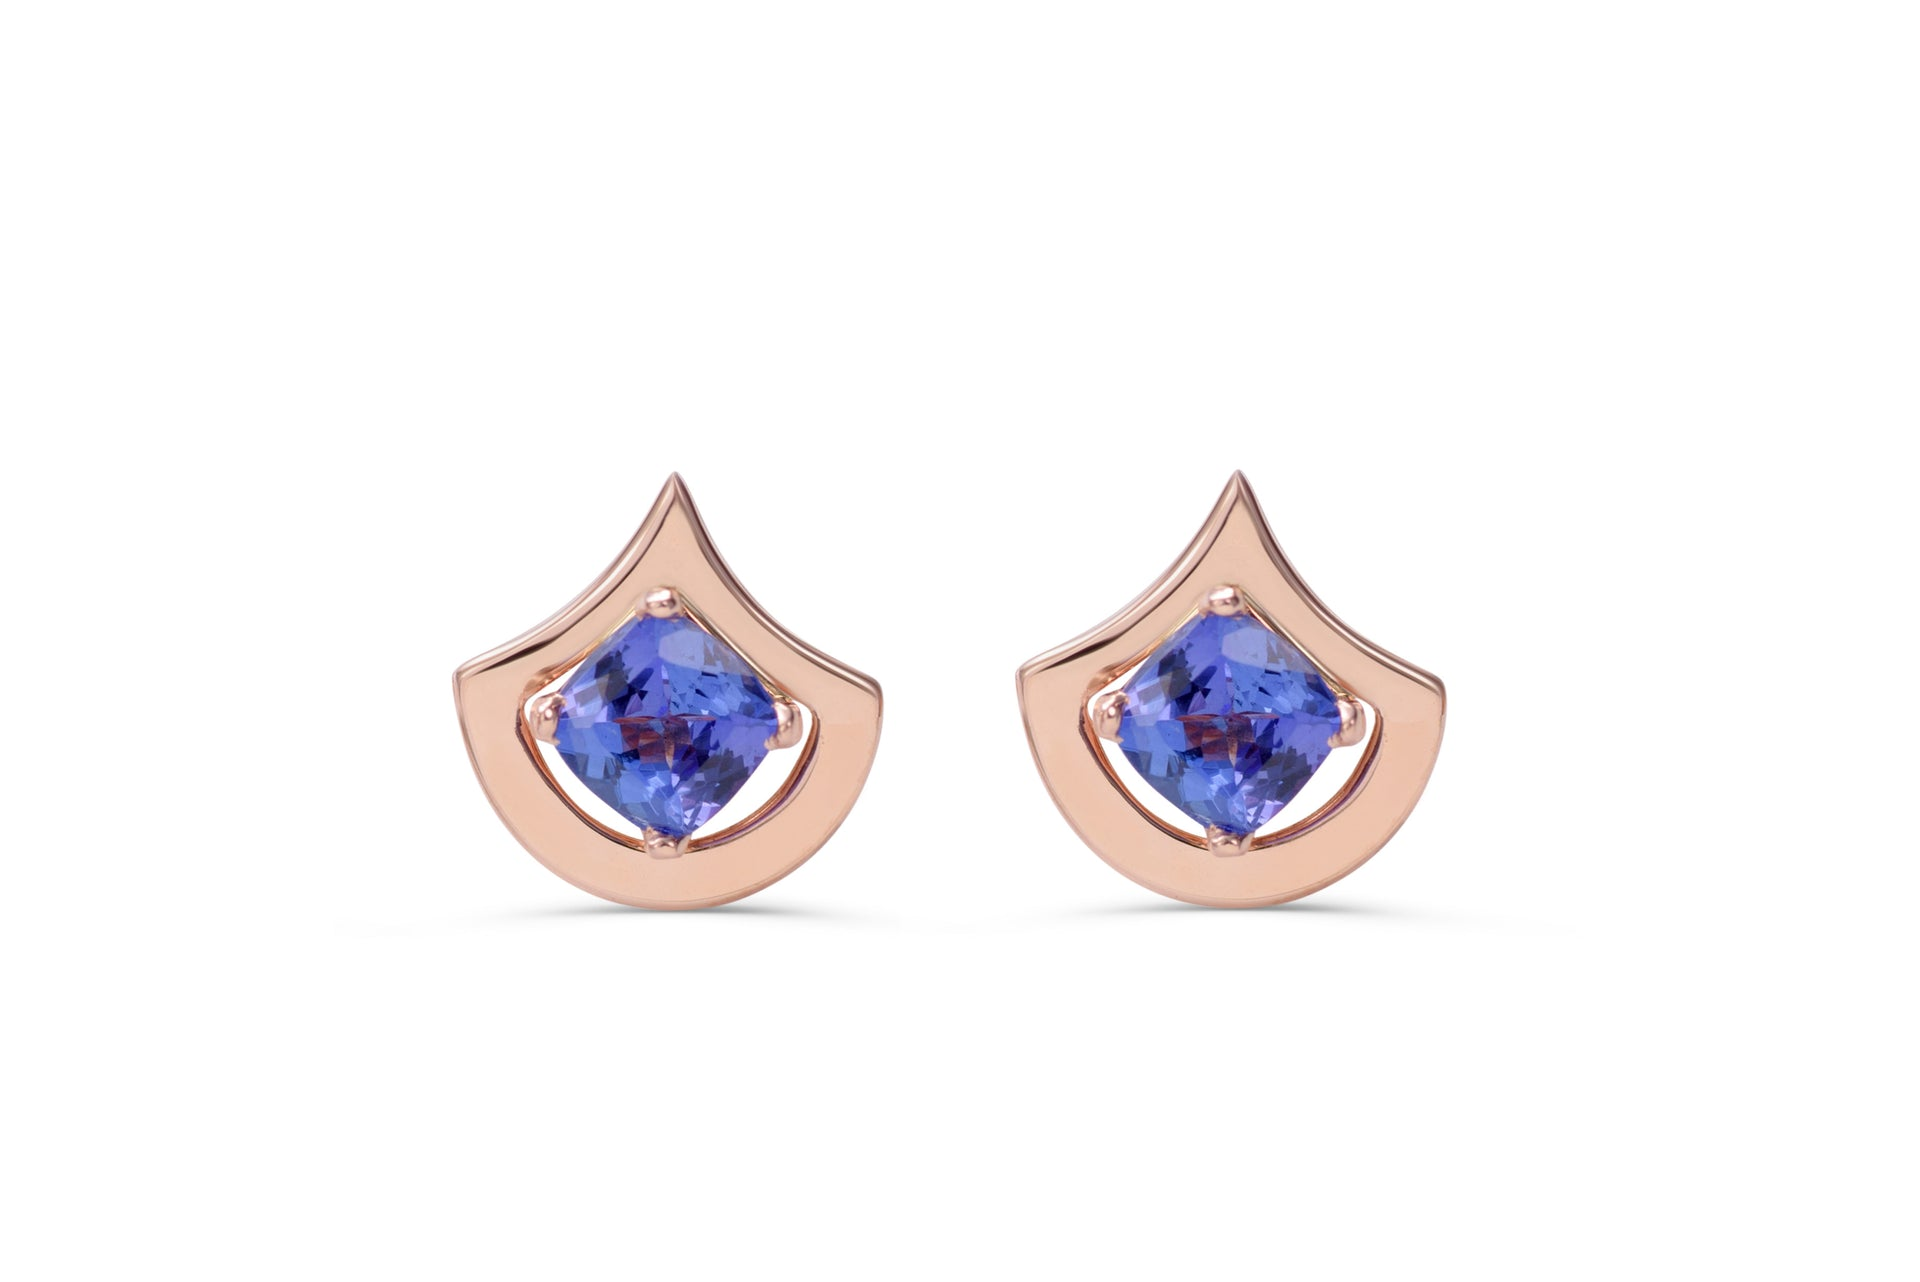 Tanzanite earrings, set in 14 kt rose gold